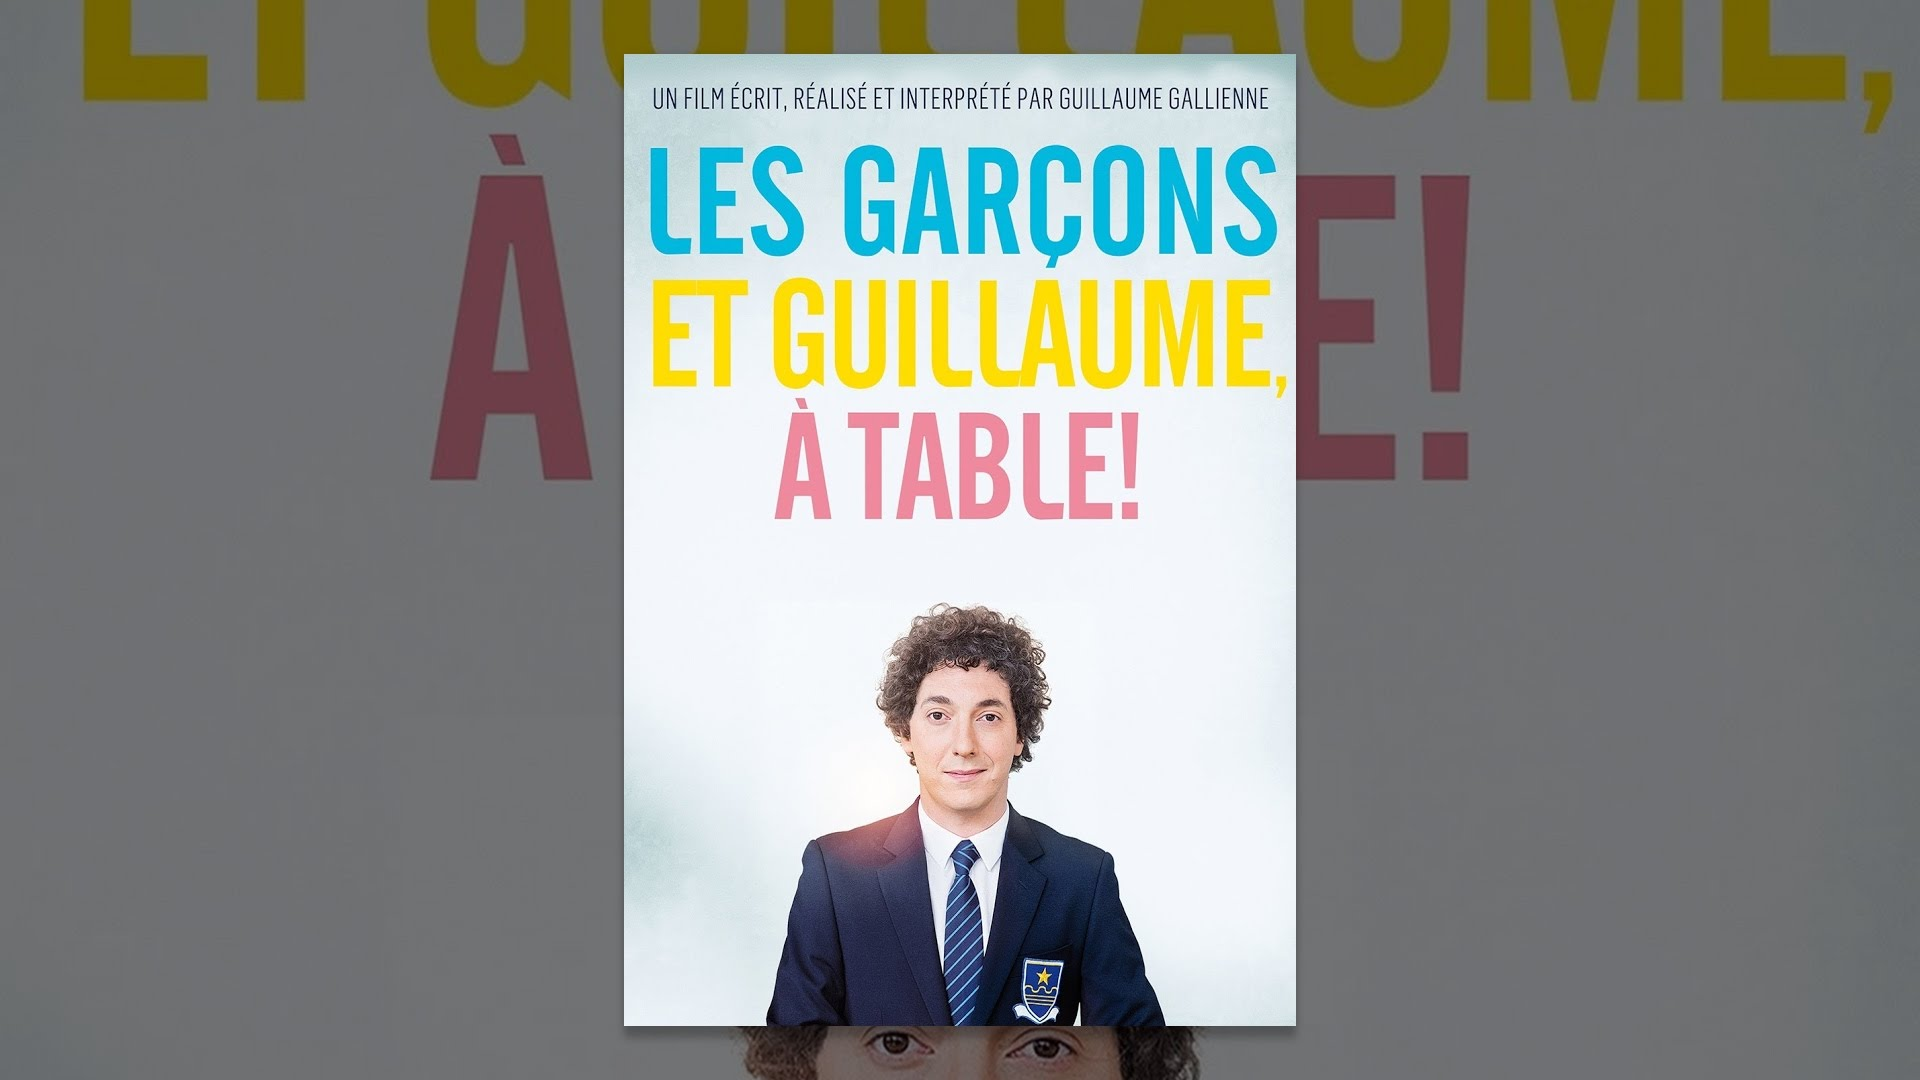 Les garcons et guillaume a table youtube - Film les garcons et guillaume a table ...